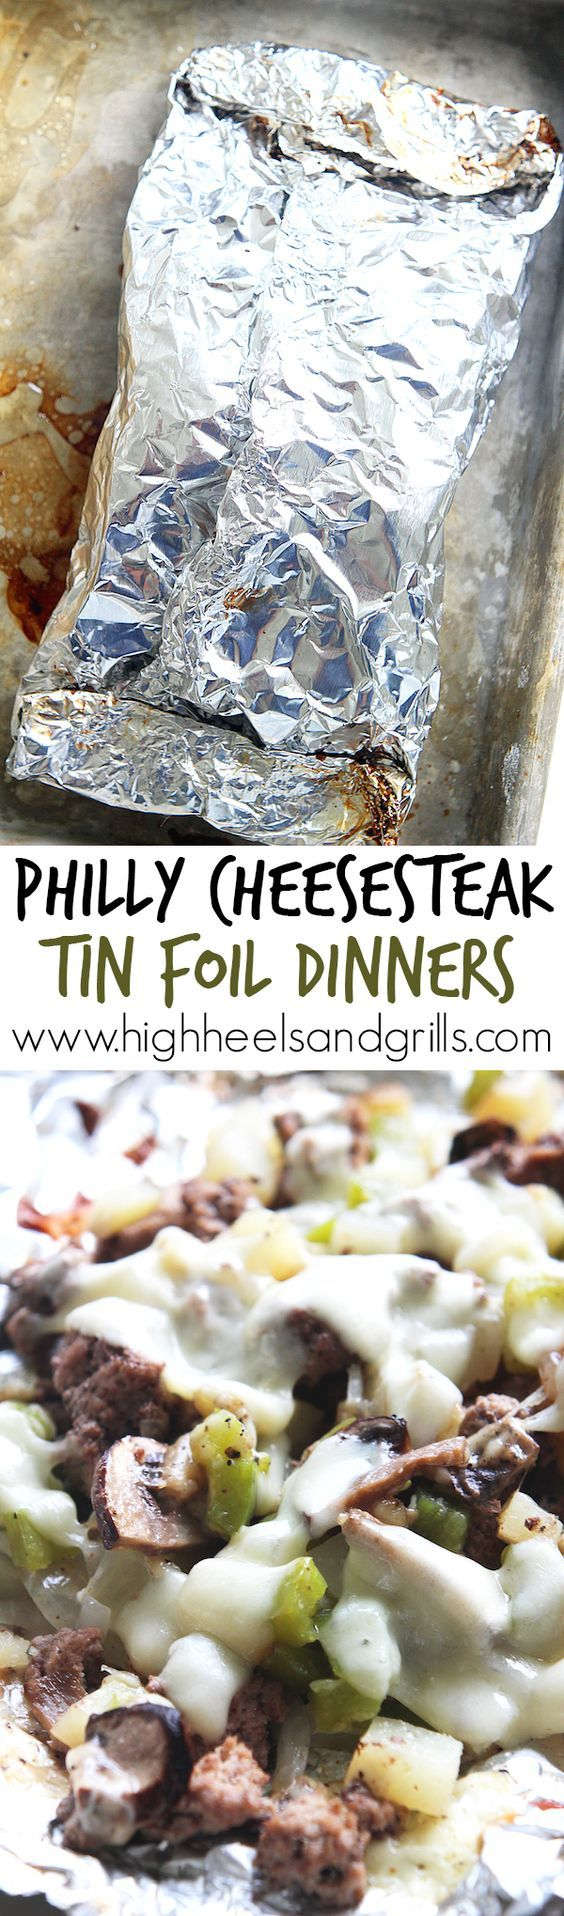 Philly Cheesesteak Foil Dinner